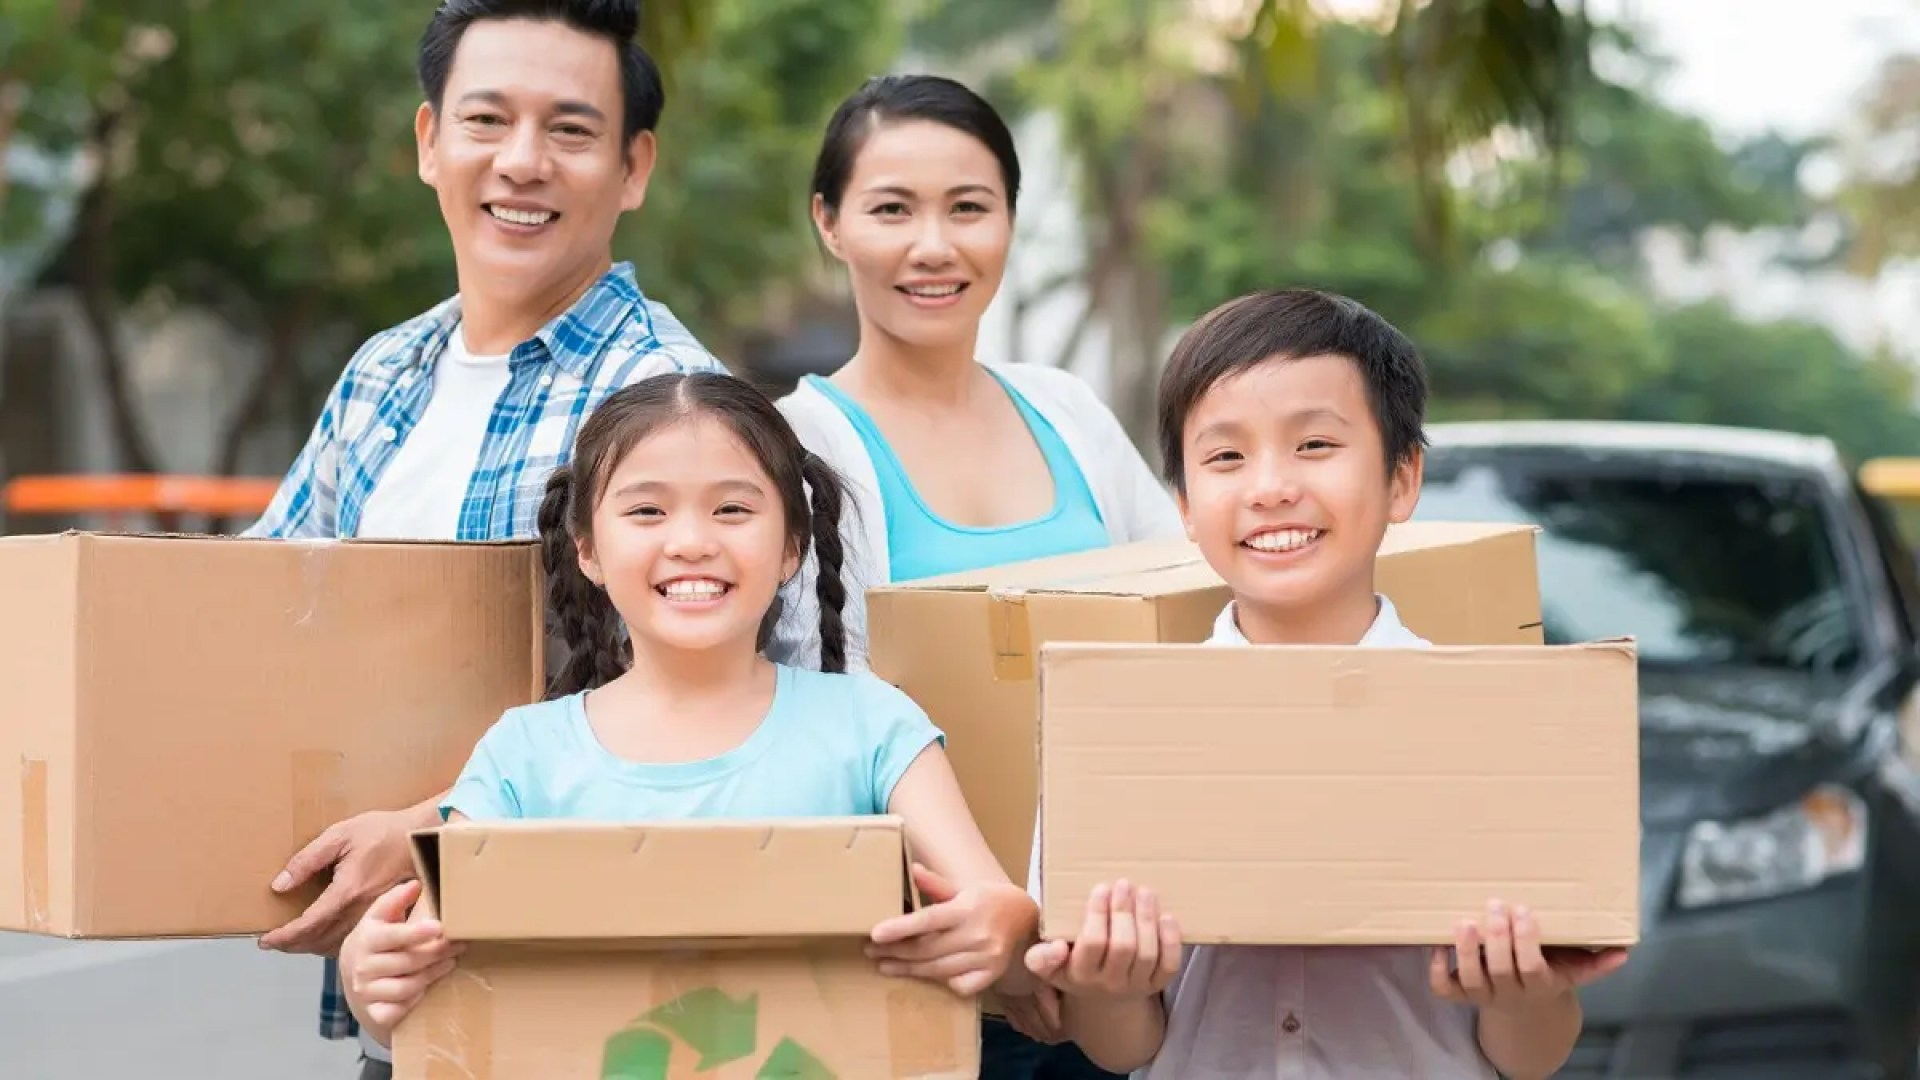 A family holds boxes for charity.